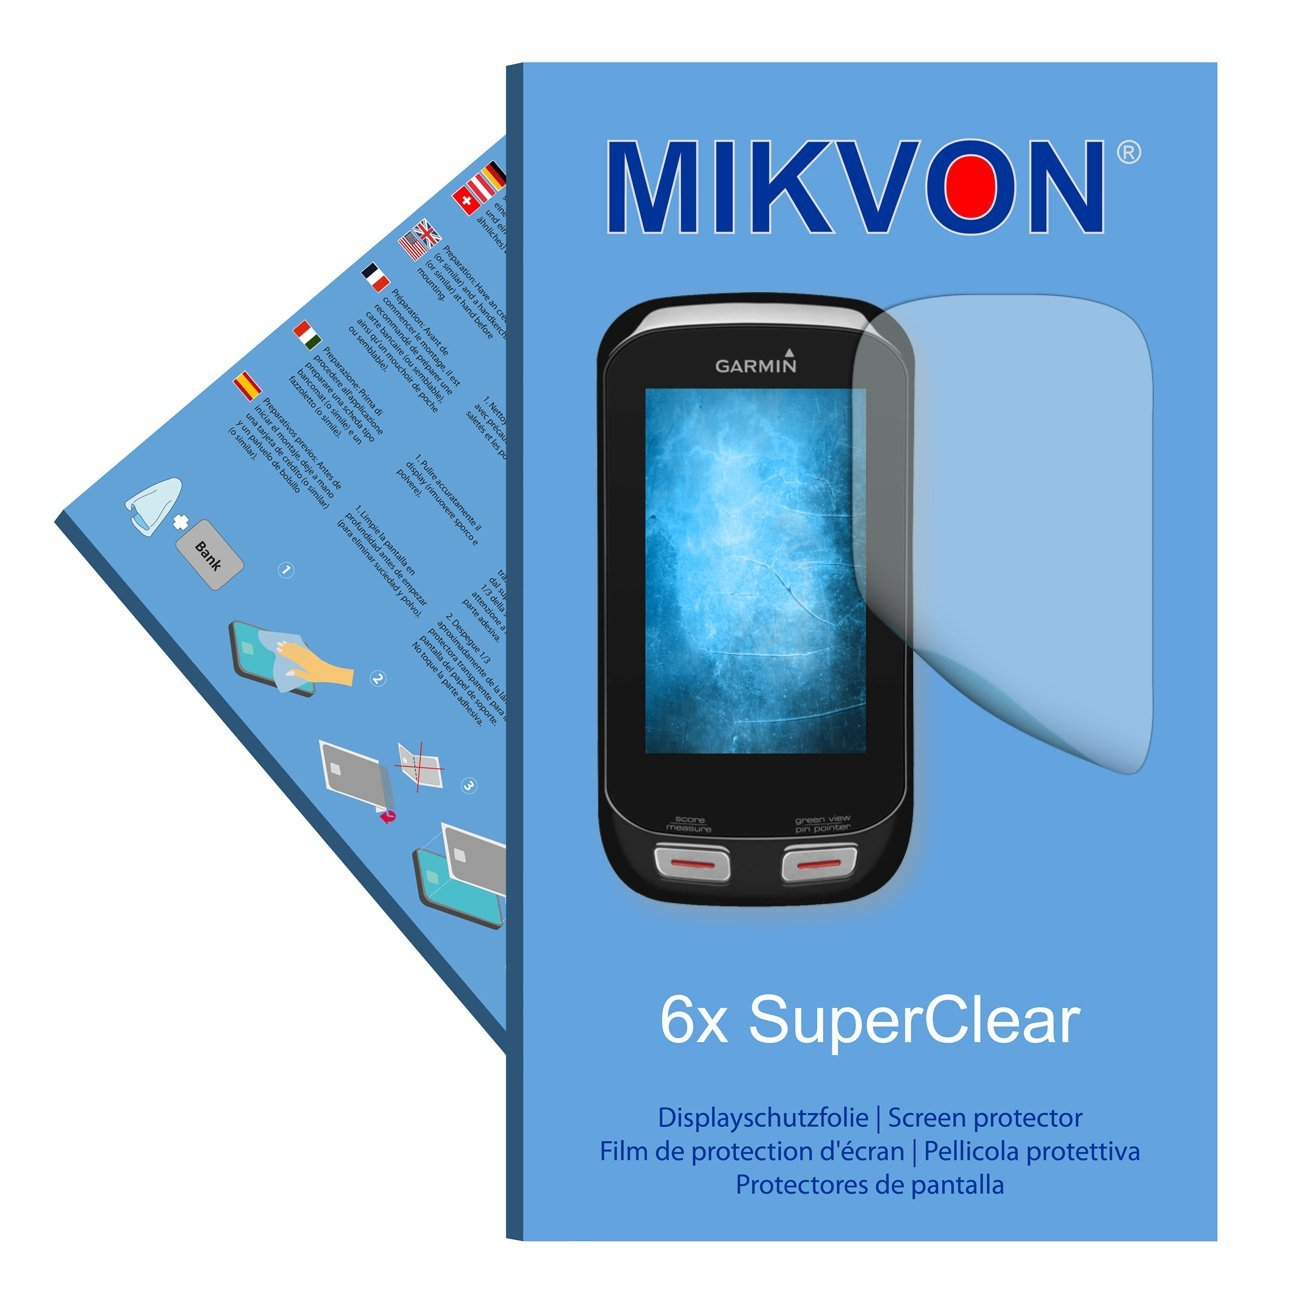 6x Mikvon films screen protector SuperClear for Garmin Approach G8 - transparent - Made in Germany